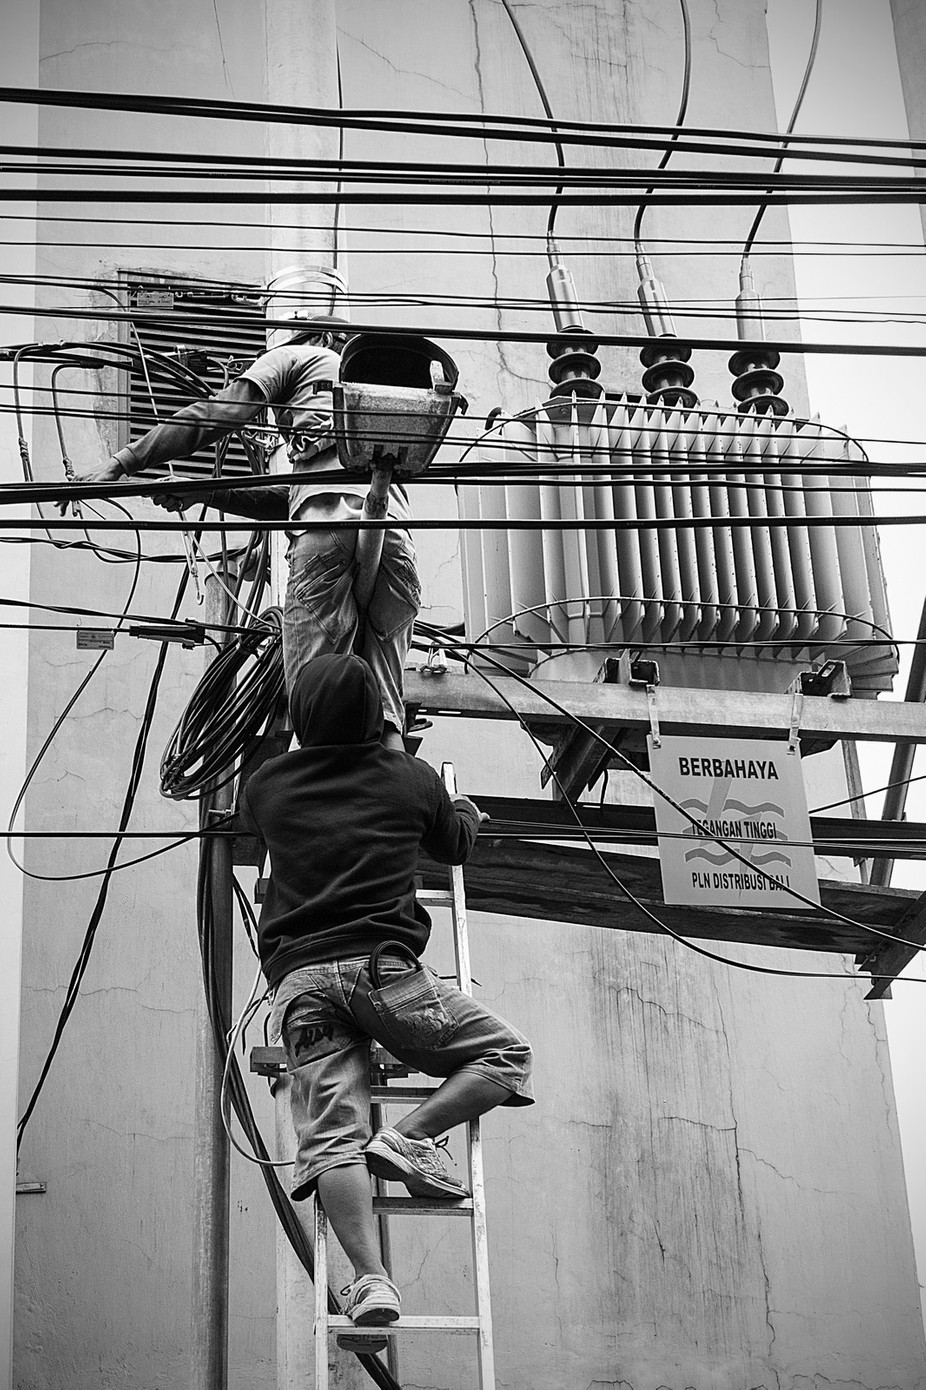 Not big on safety. Power line workers Bali 2015